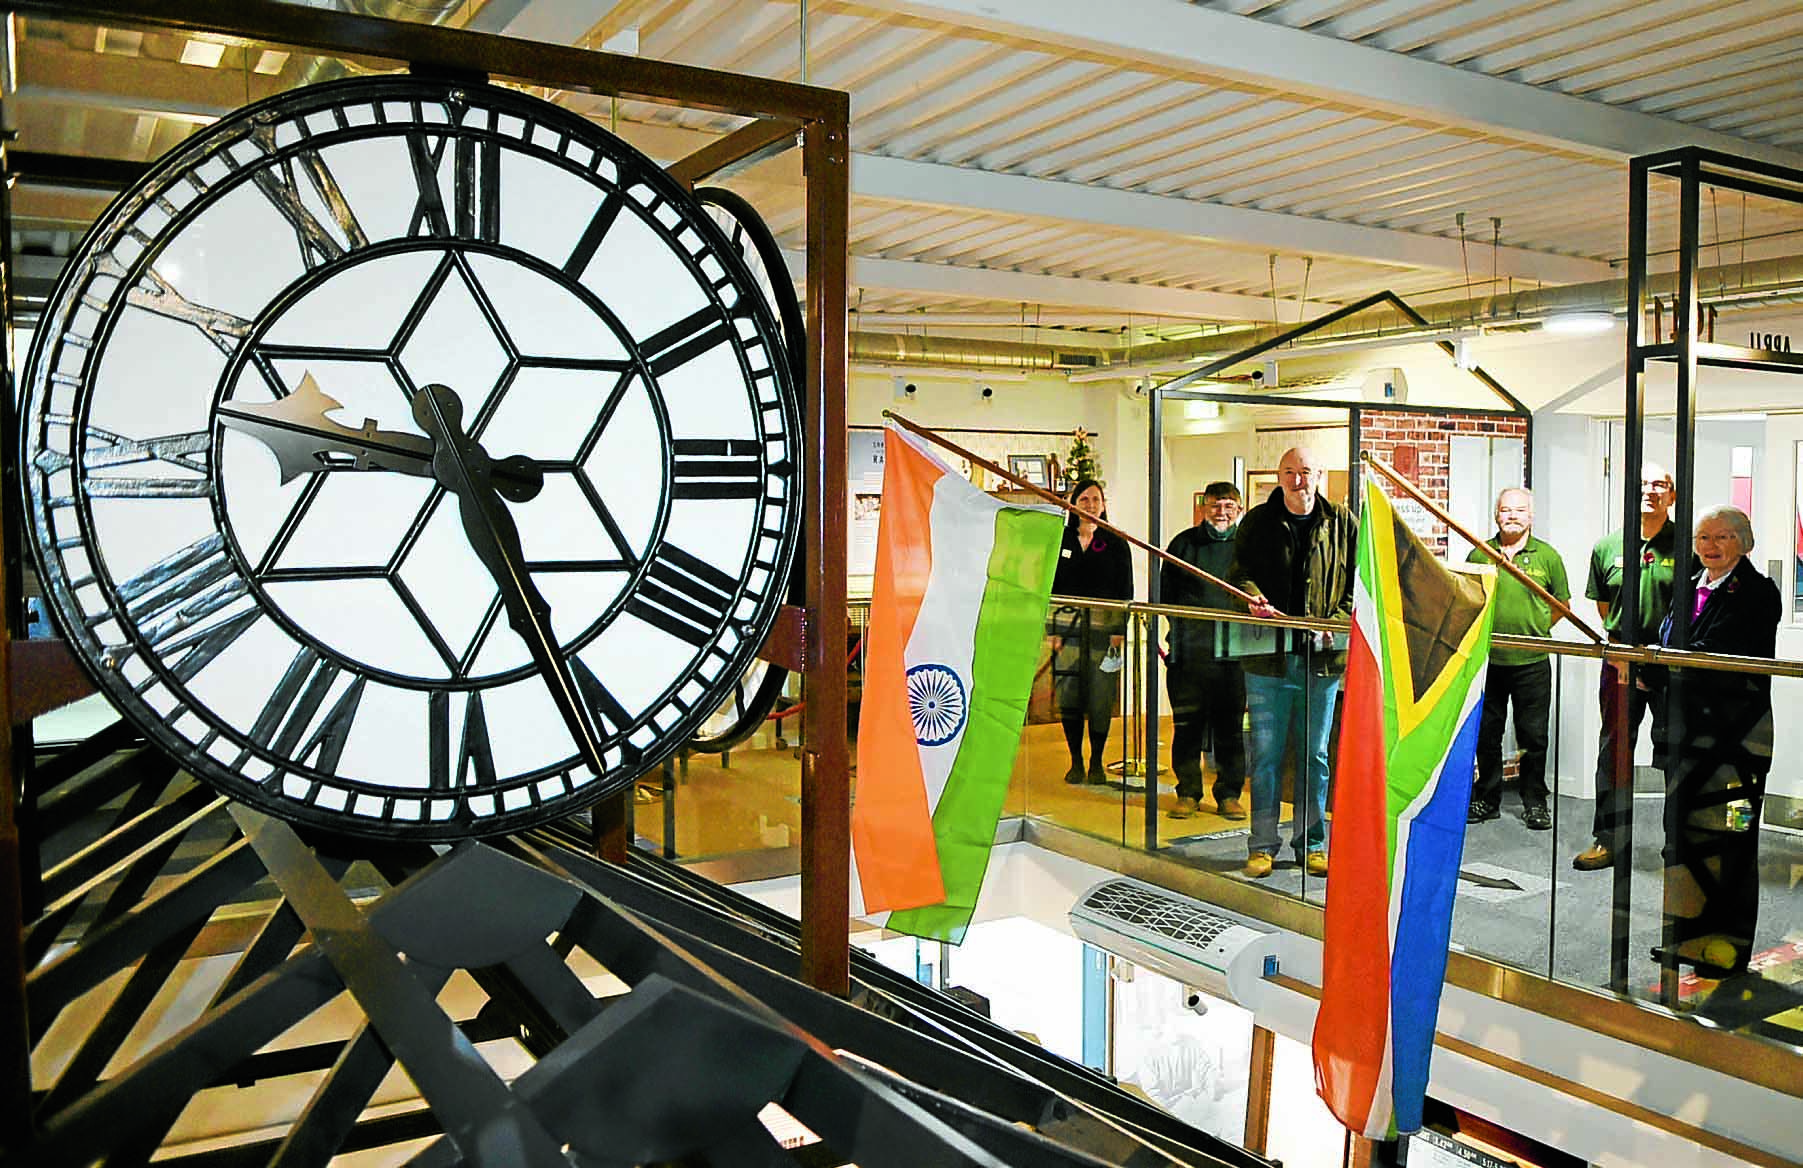 Clock given pride of place at museum